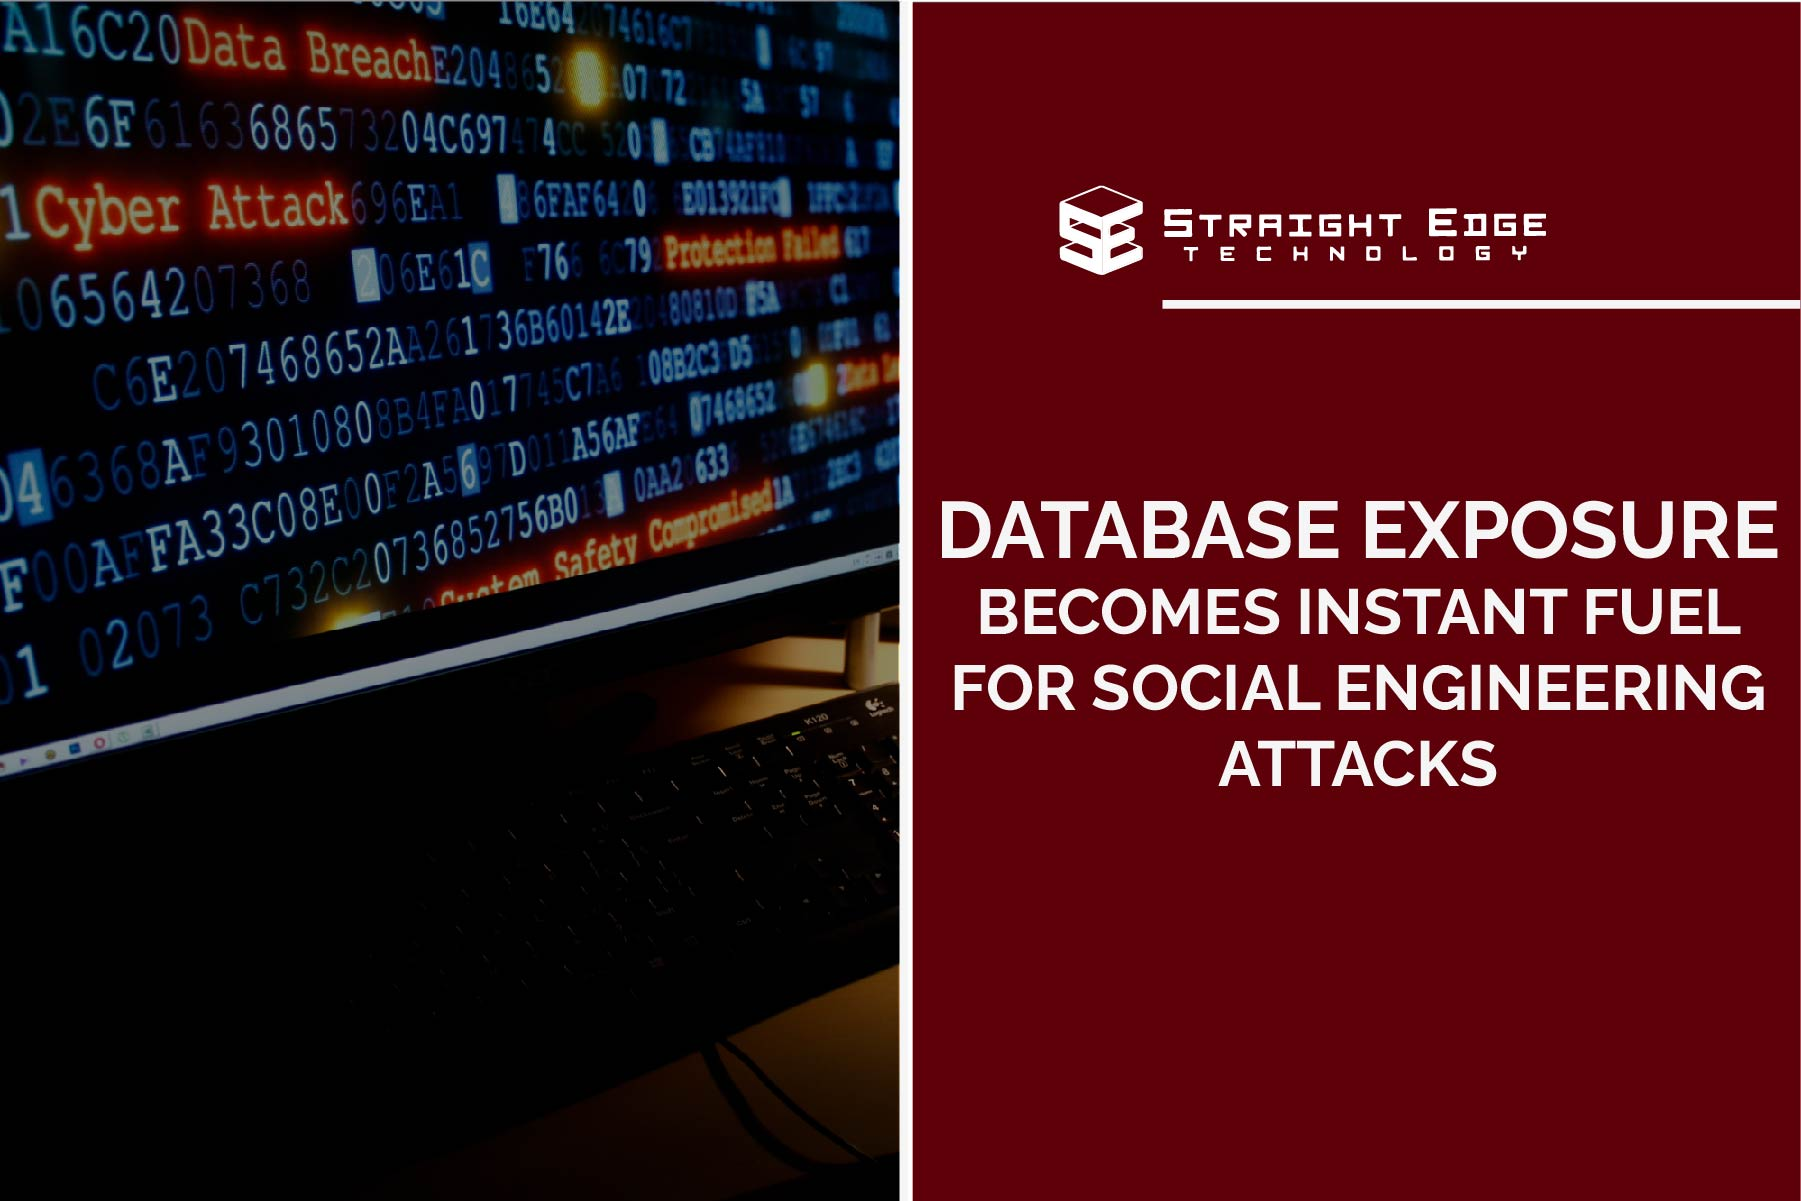 database exposure becomes instant fuel for social engineering attacks